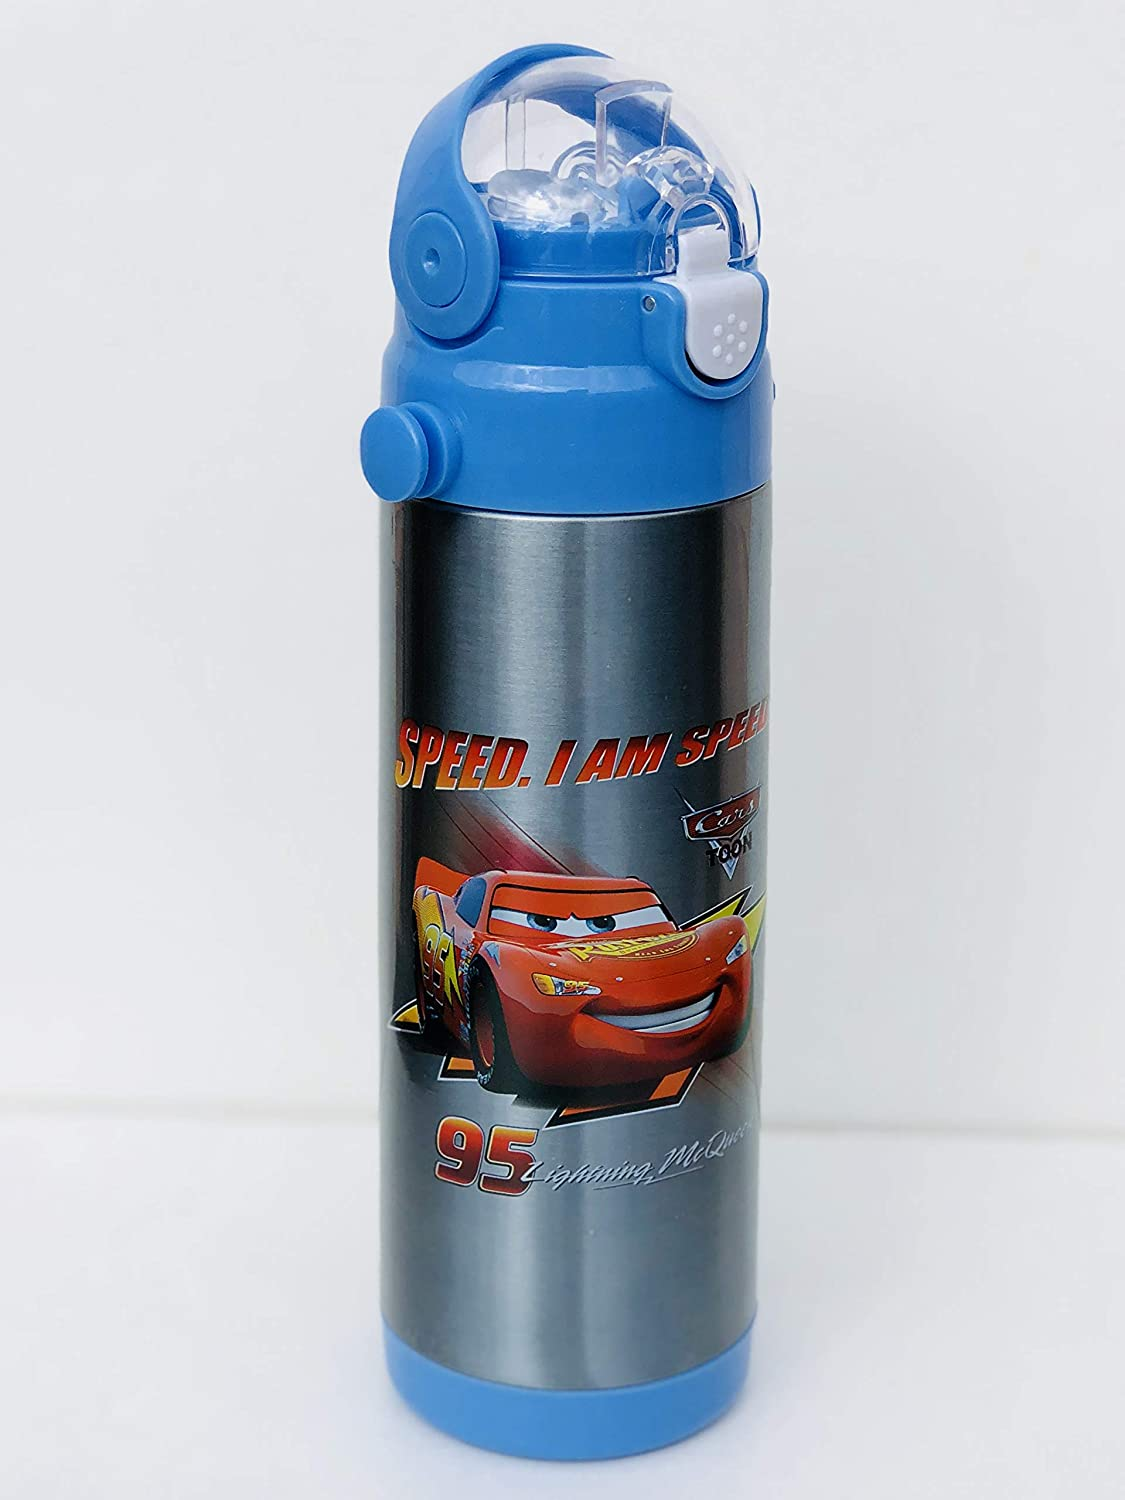 Character Kids Water Bottle Cars 500 ml Bottle for School, Flask Bottle for Sports, Camping, Cycling, Staying Hydrated, Favourite Kids Character Forever